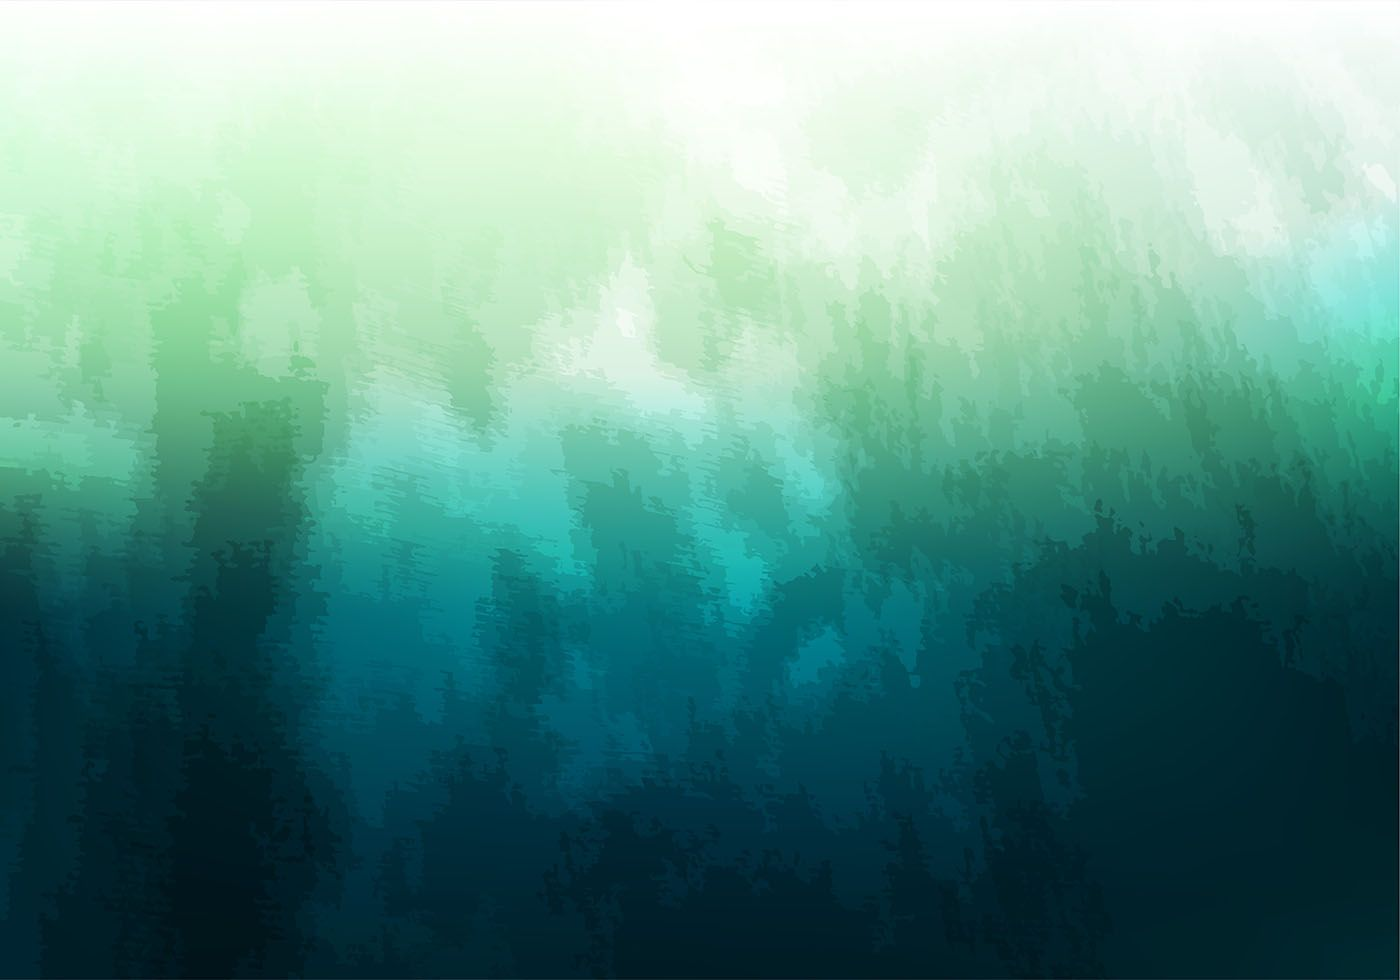 Blue Green Watercolor Background Google Search Watercolor